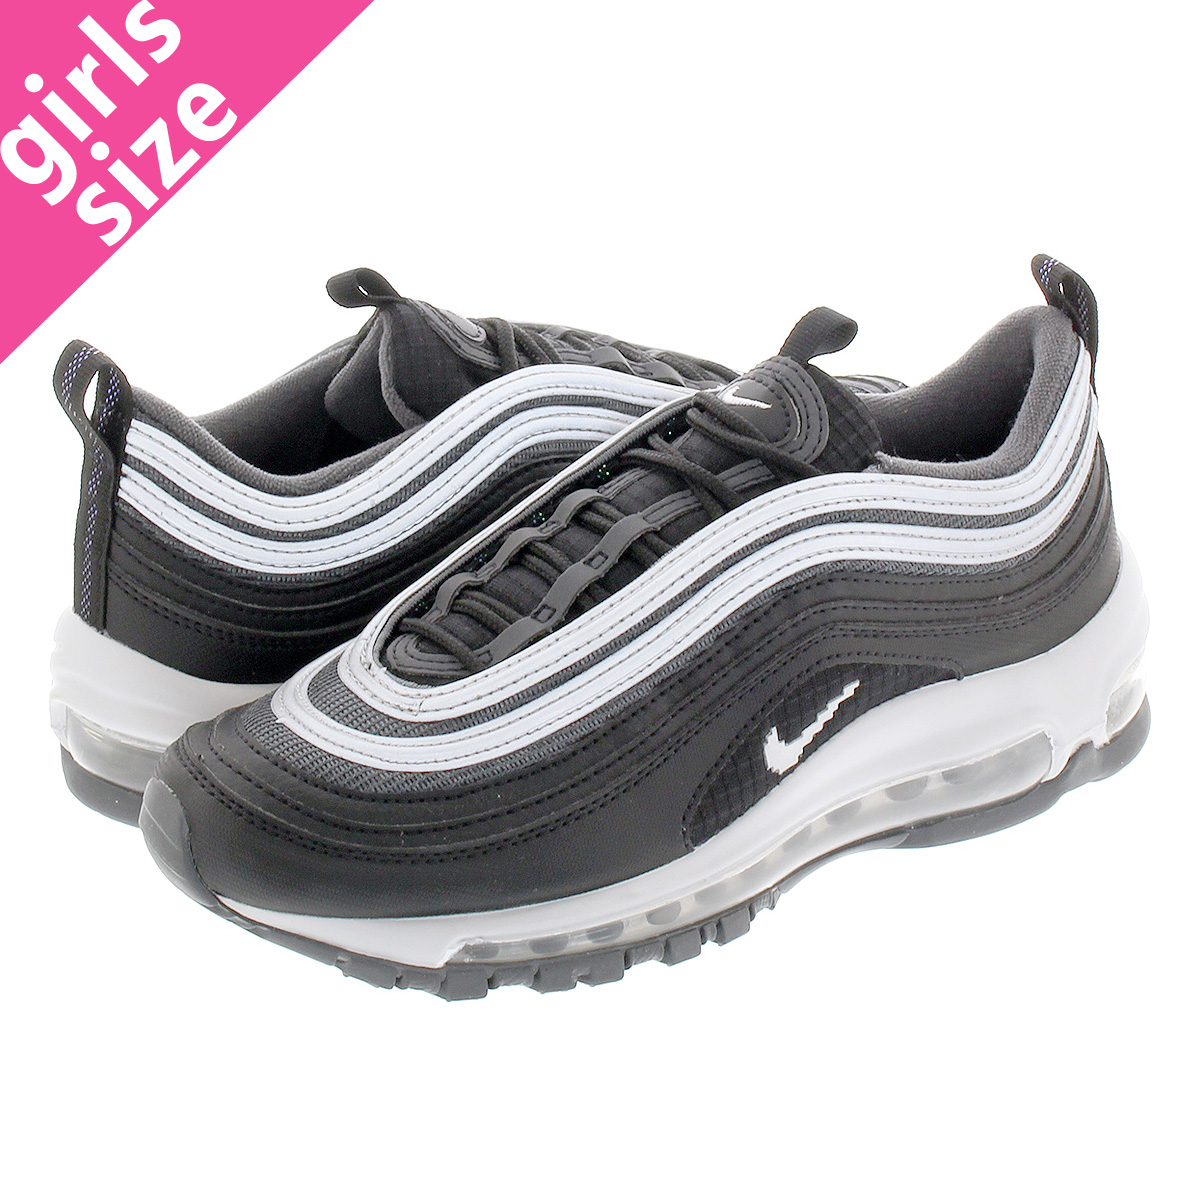 Nike AIR MAX 97 Men's Shoes Shoes 60items | Rakuten